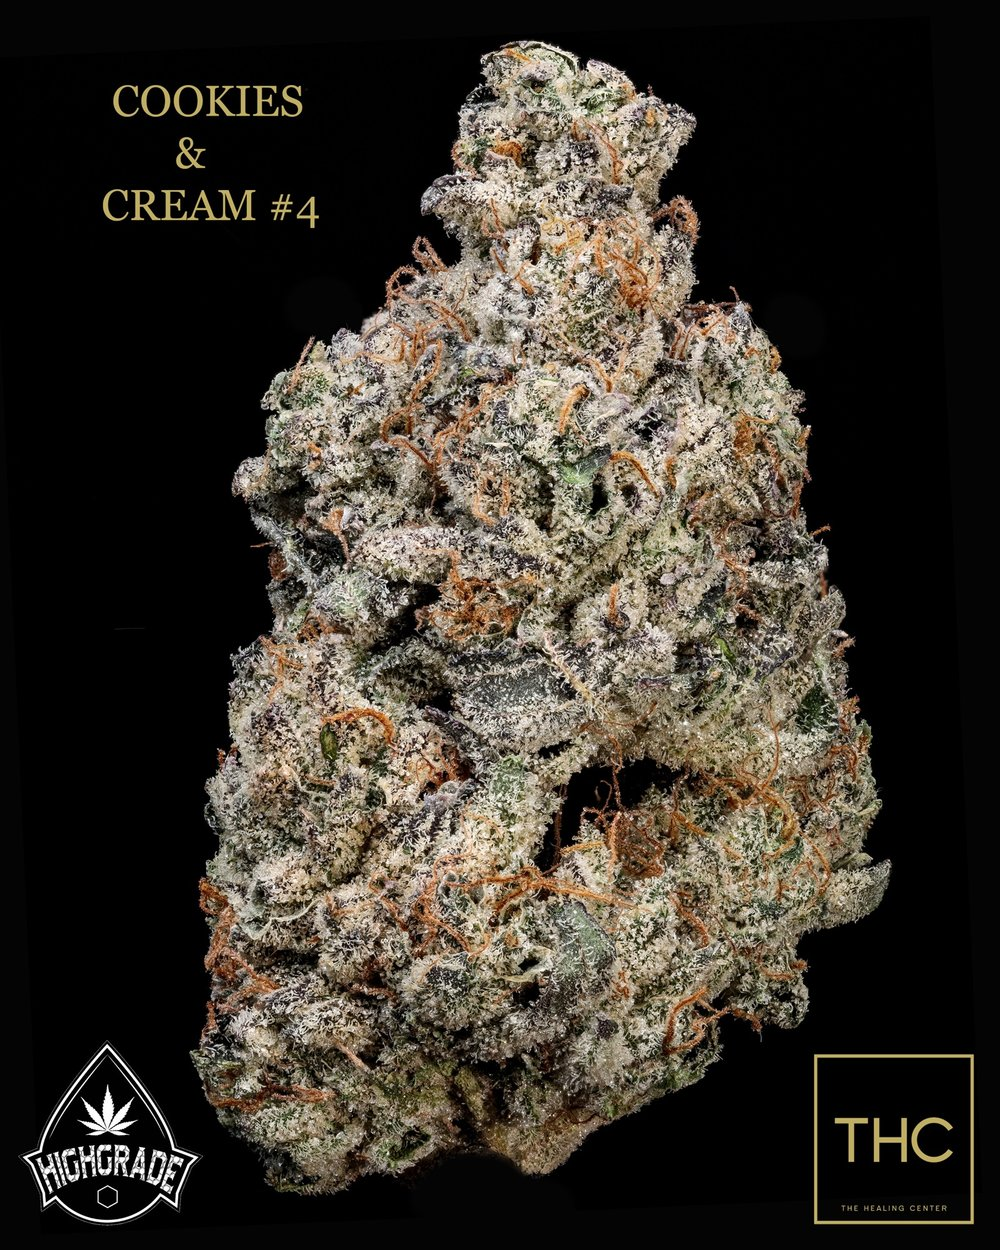 Cookies & Cream 4 Highgrade 2018 THC.jpg